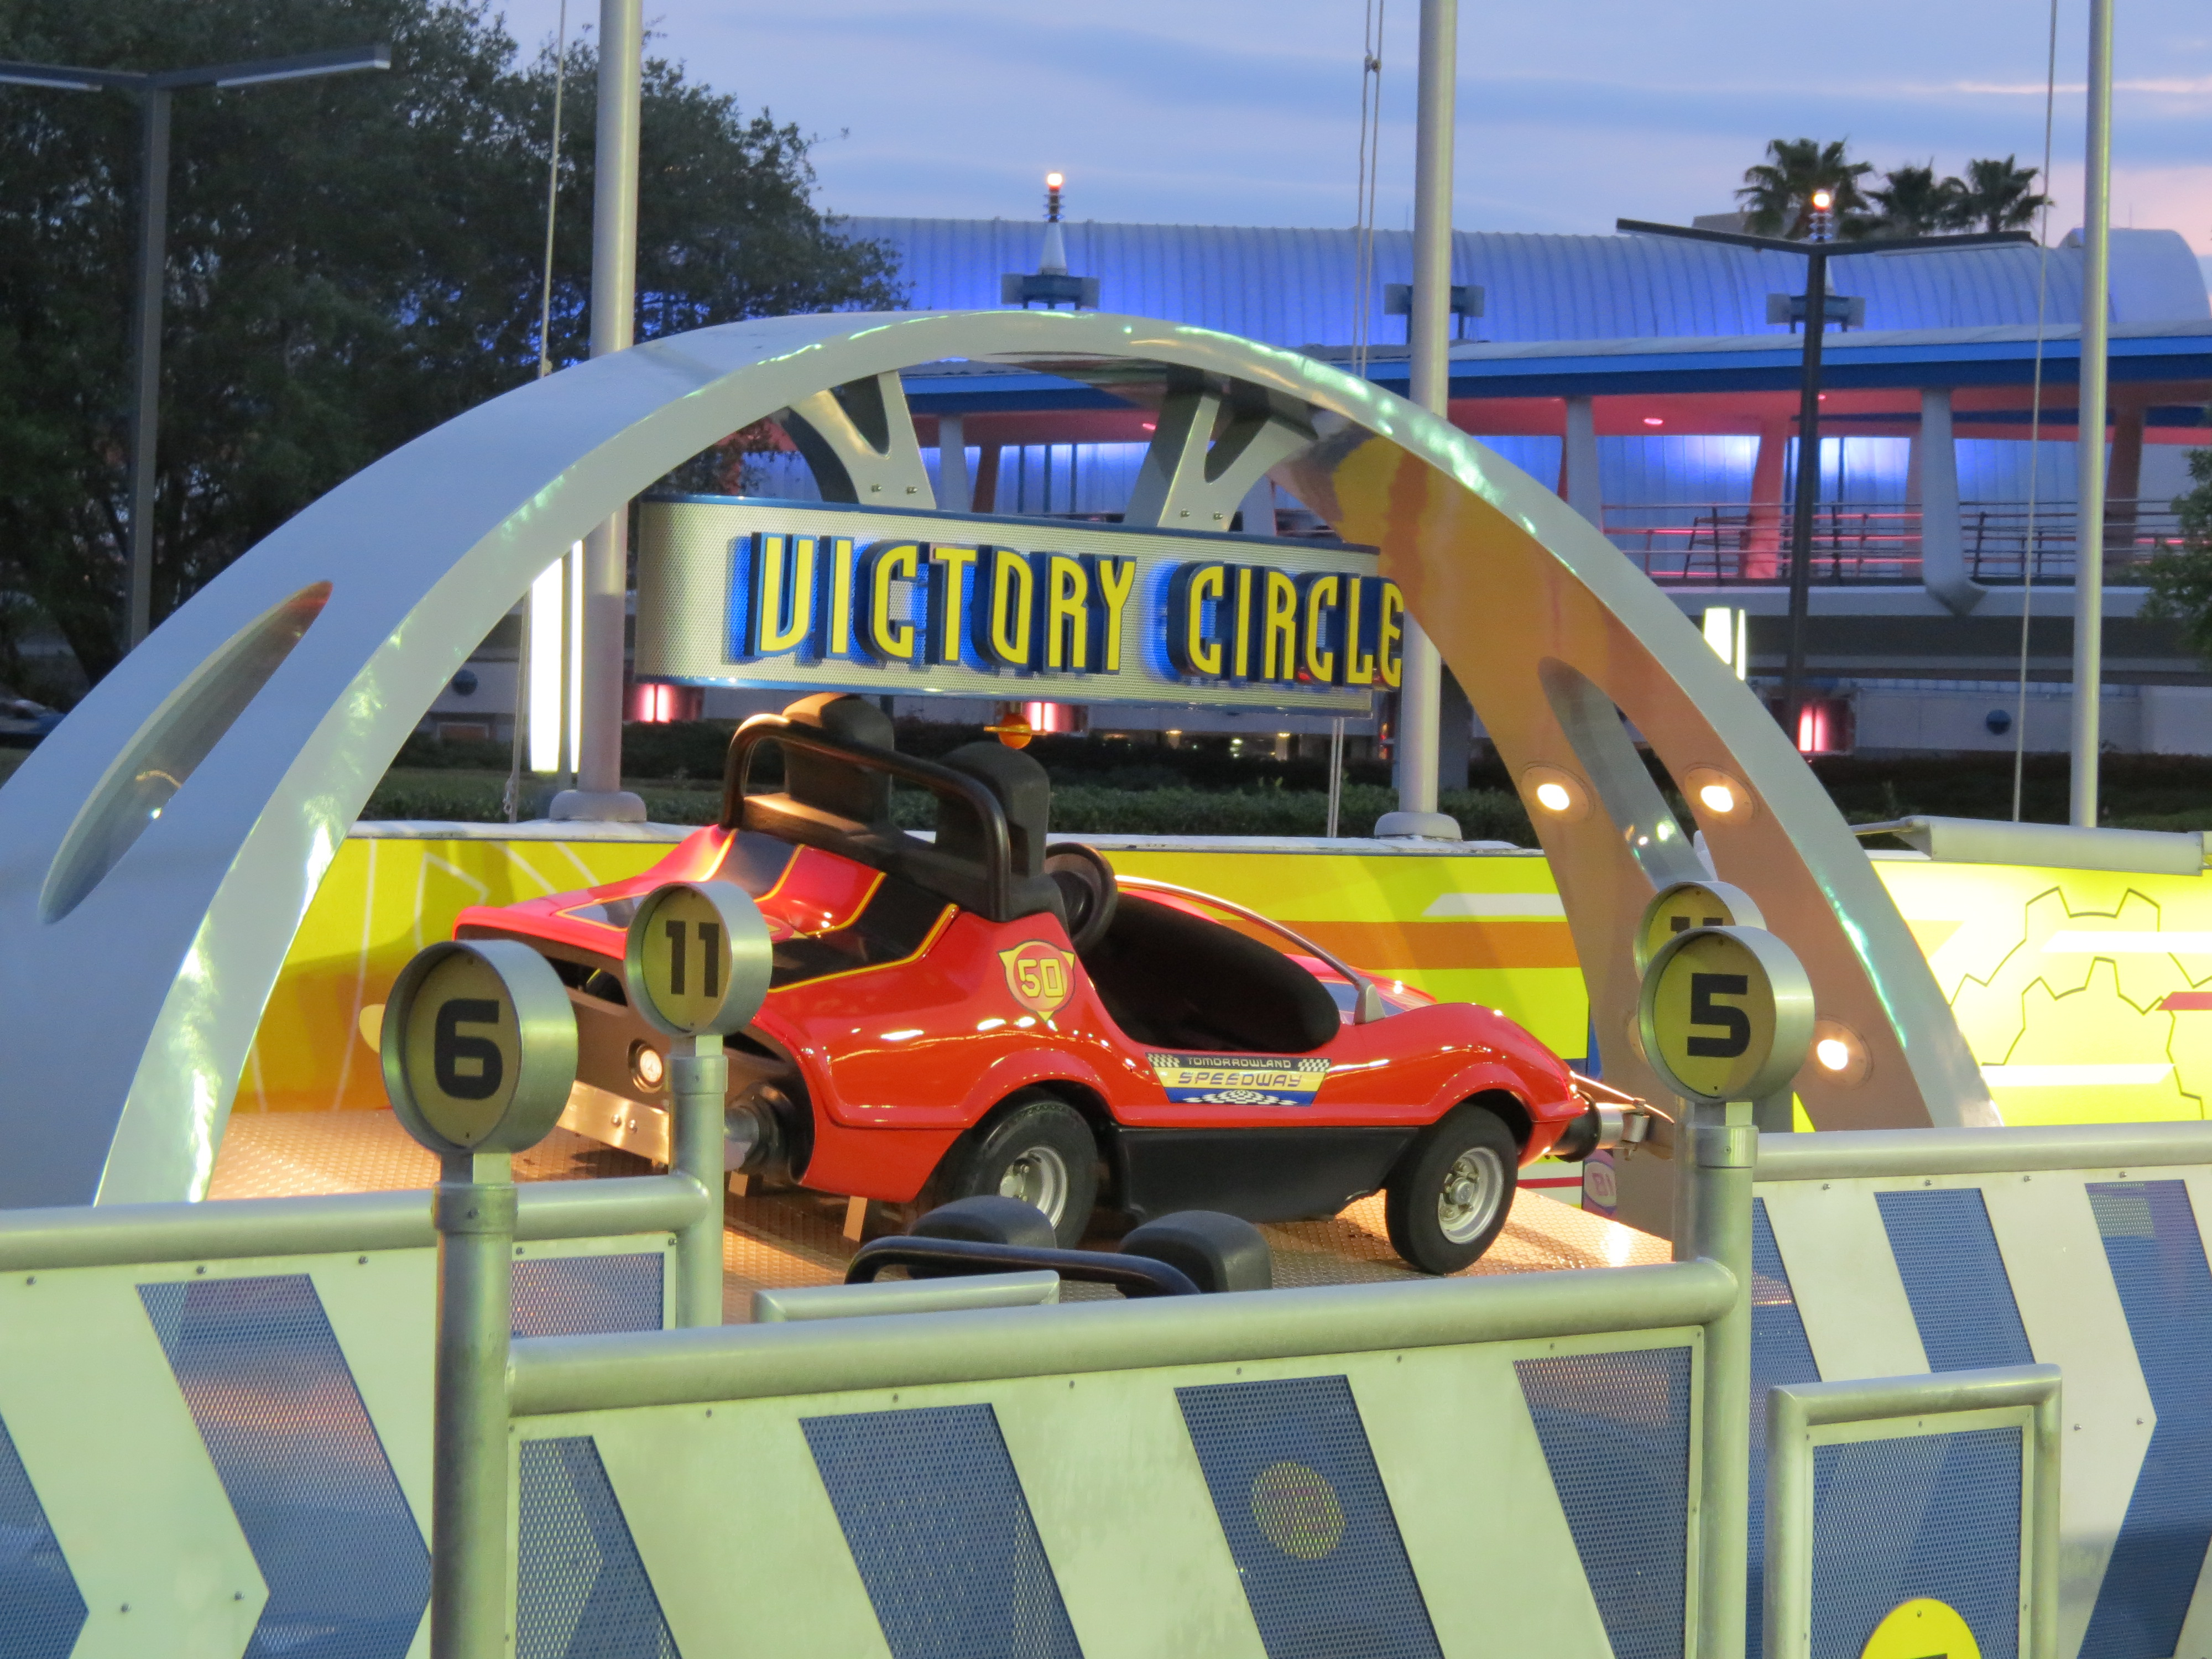 Terrific Tuesdays: Driving Down the Tomorrowland Speedway